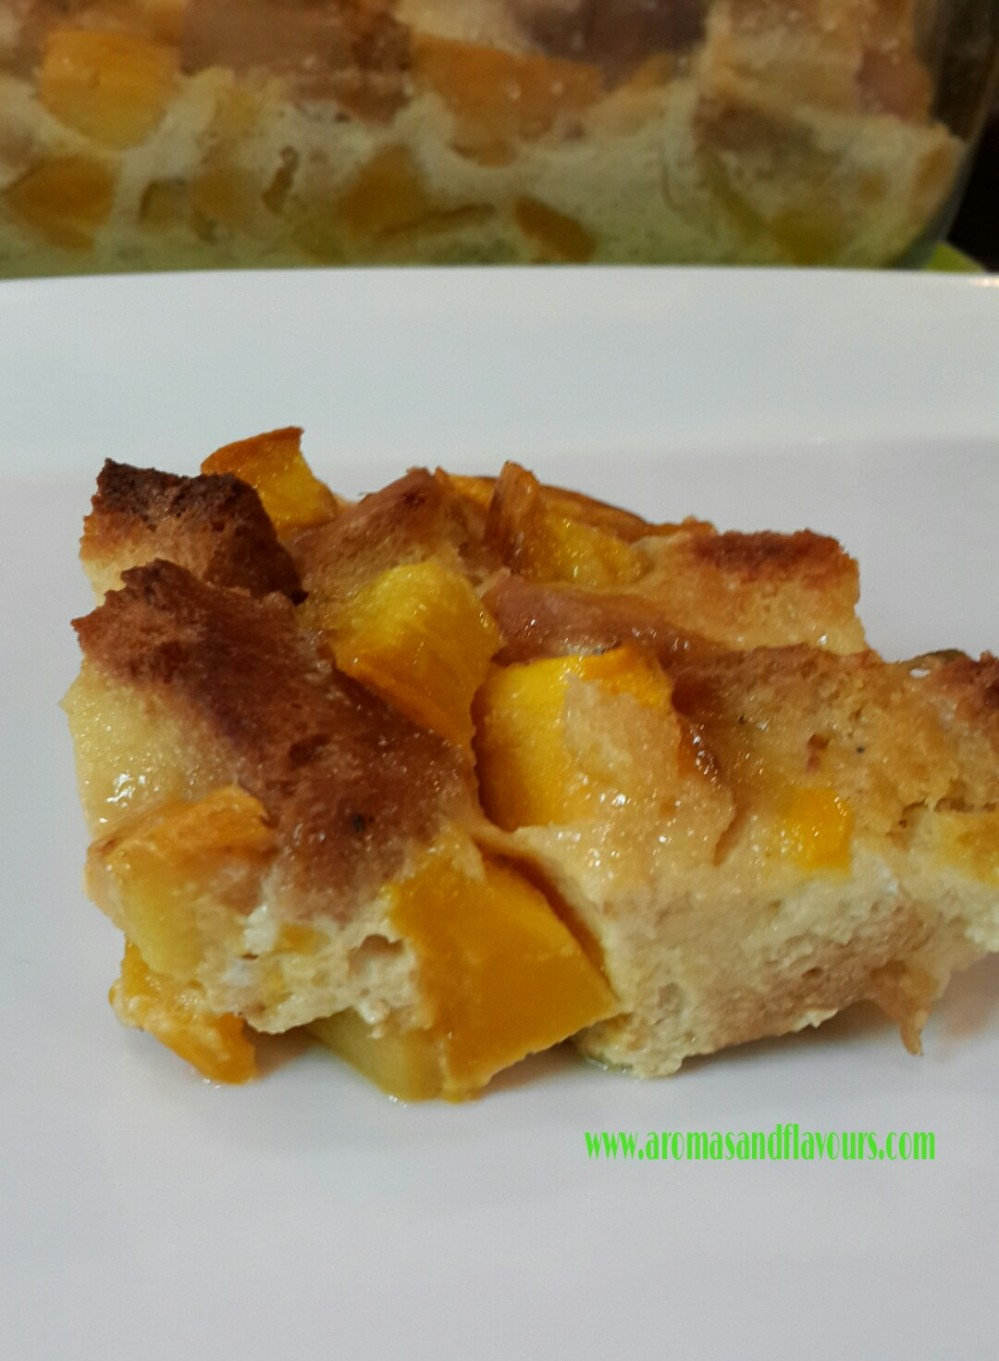 Warm slice of Mango bread pudding